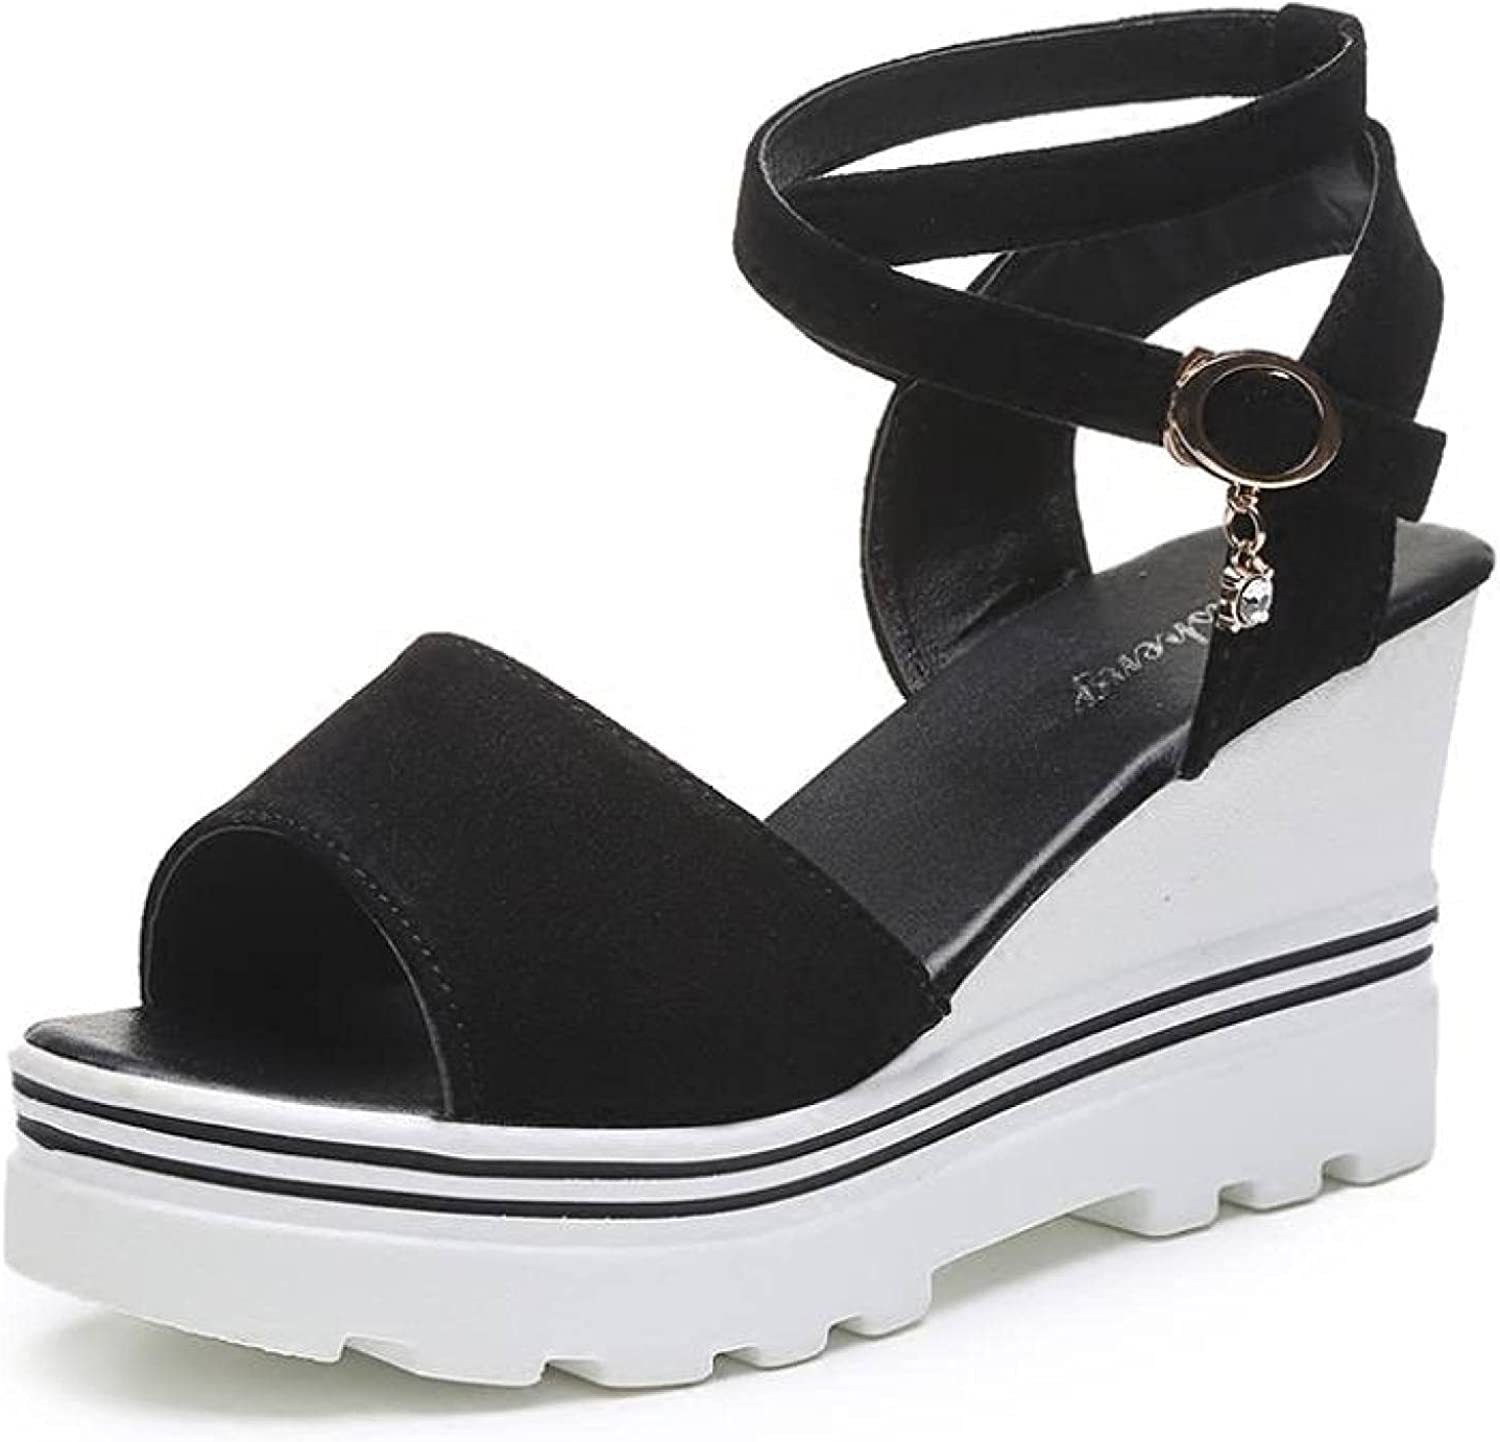 Woman Industry No. 1 Wedge Heel Sandals Bombing new work Party Comfy Strap Casual Cross Ankle Sk